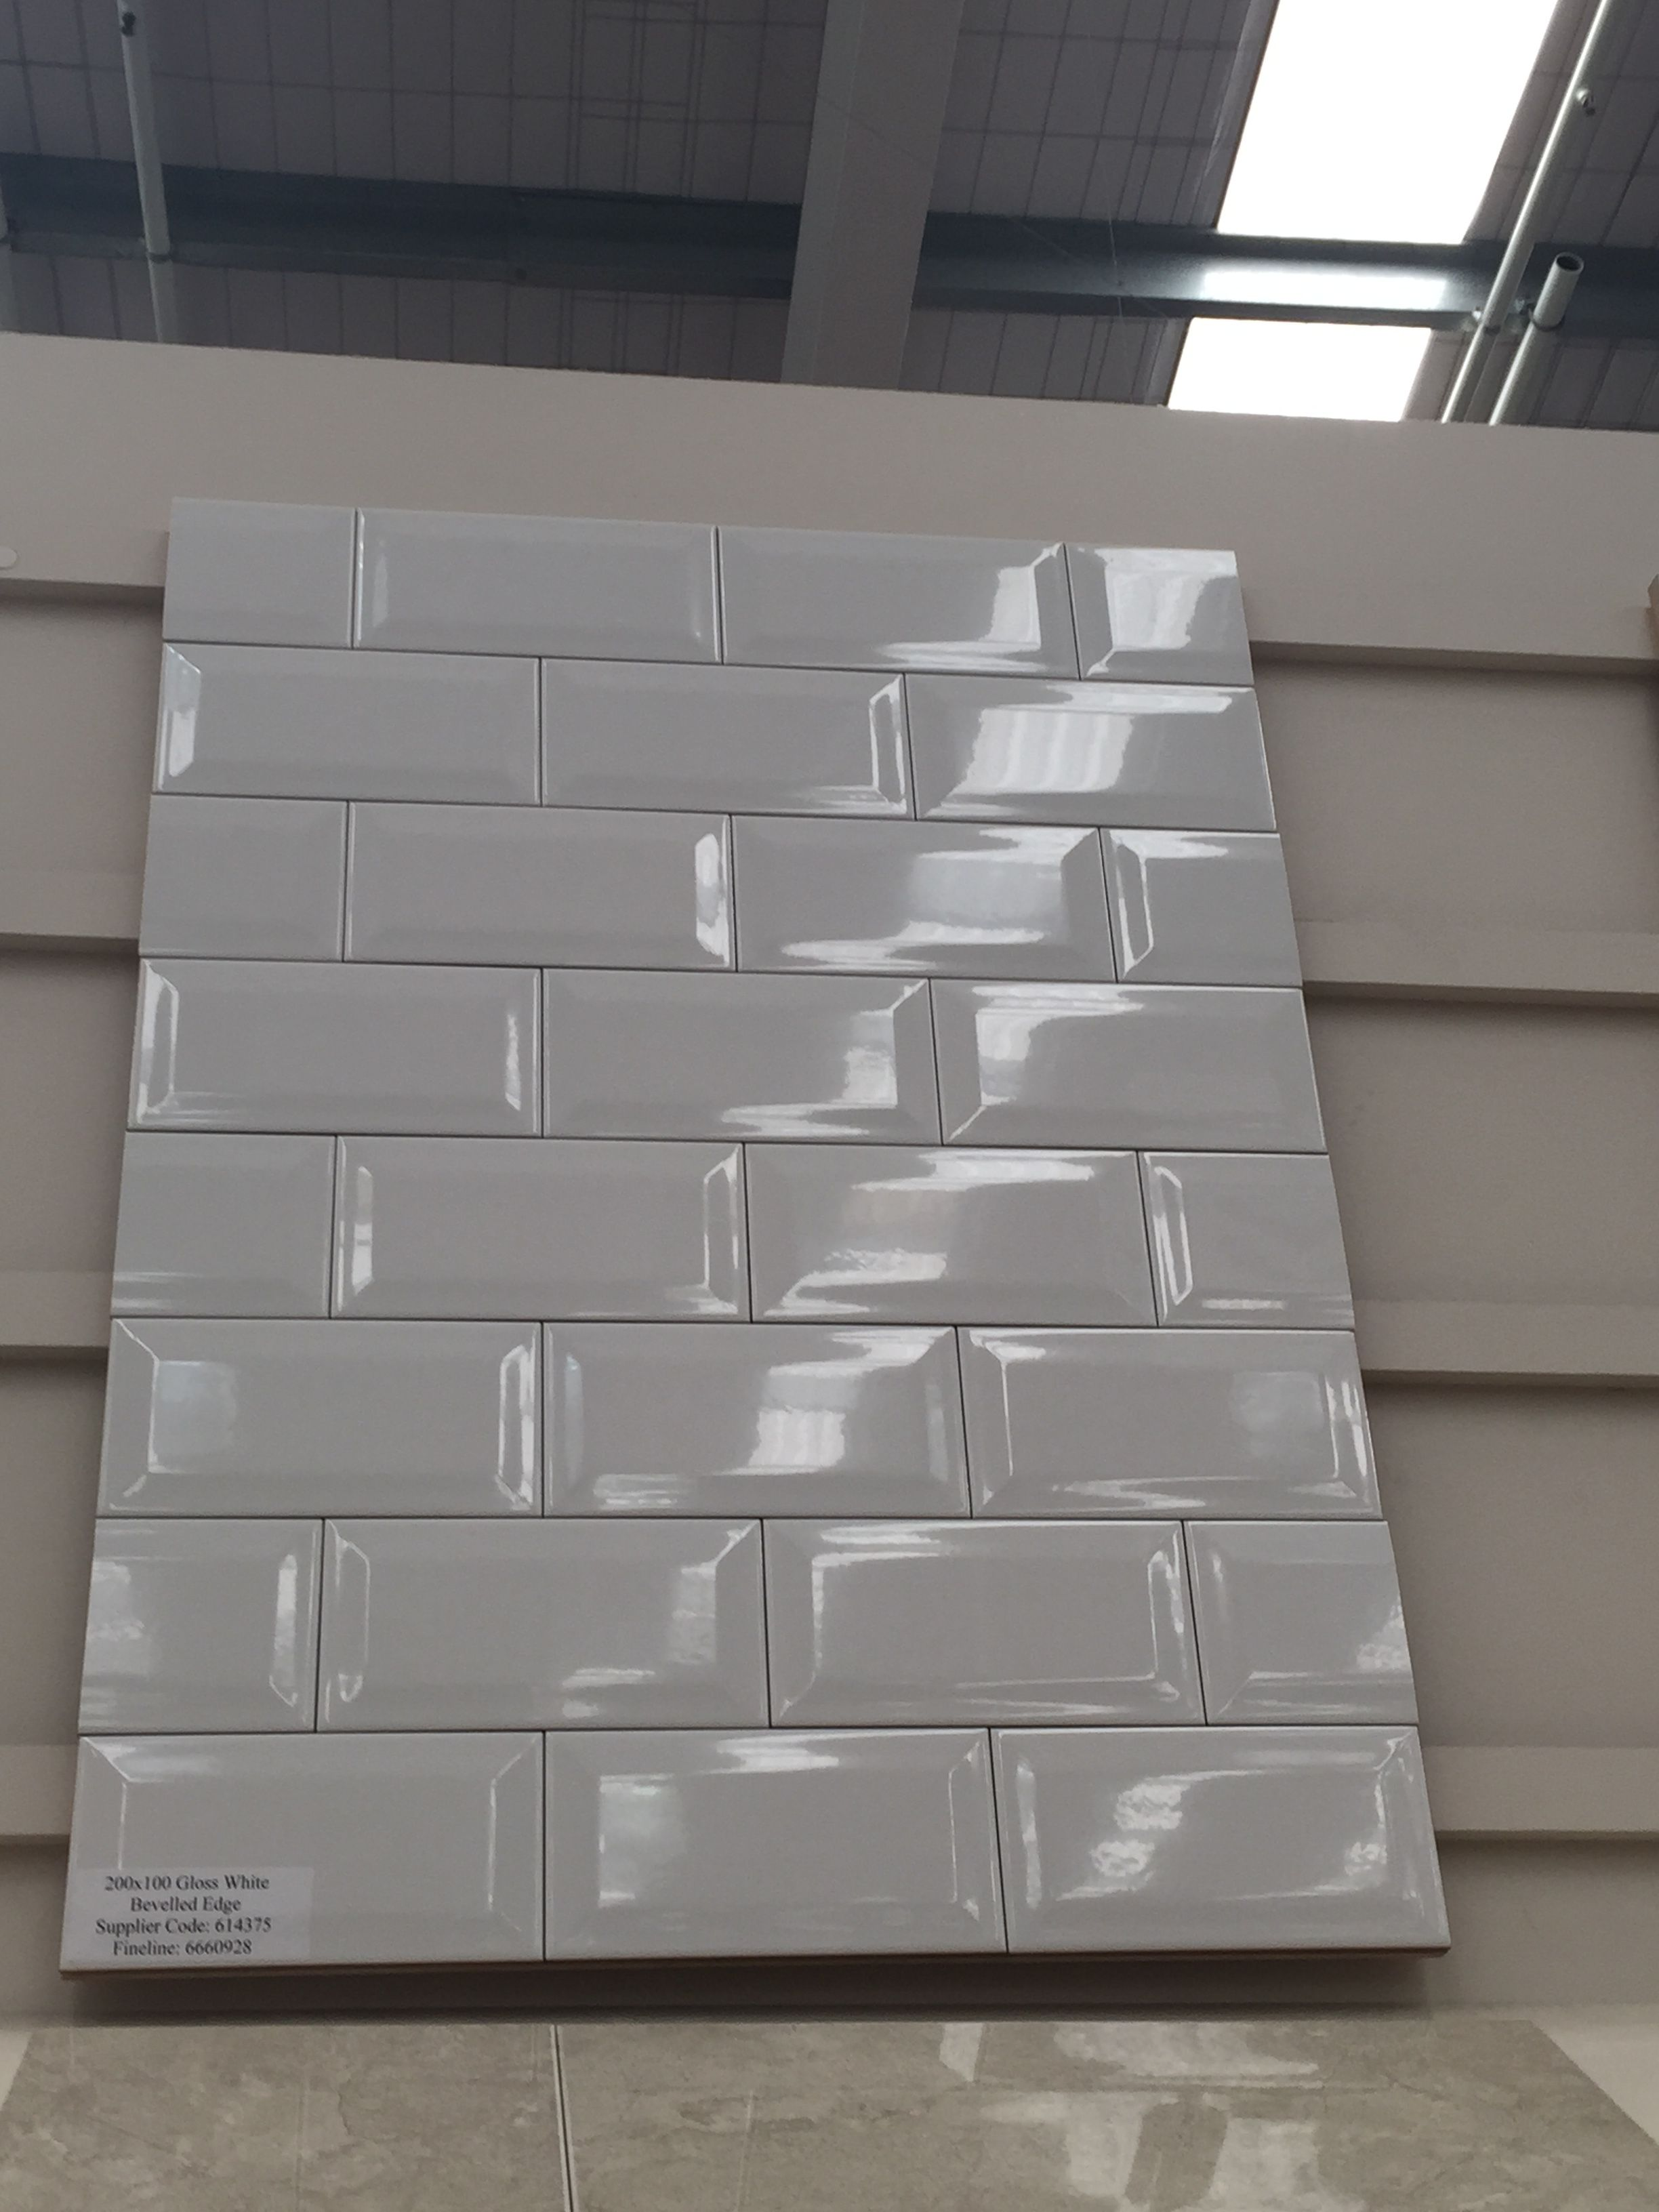 Beveled Subway Tiles Bunnings Kitchen In 2019 Beveled